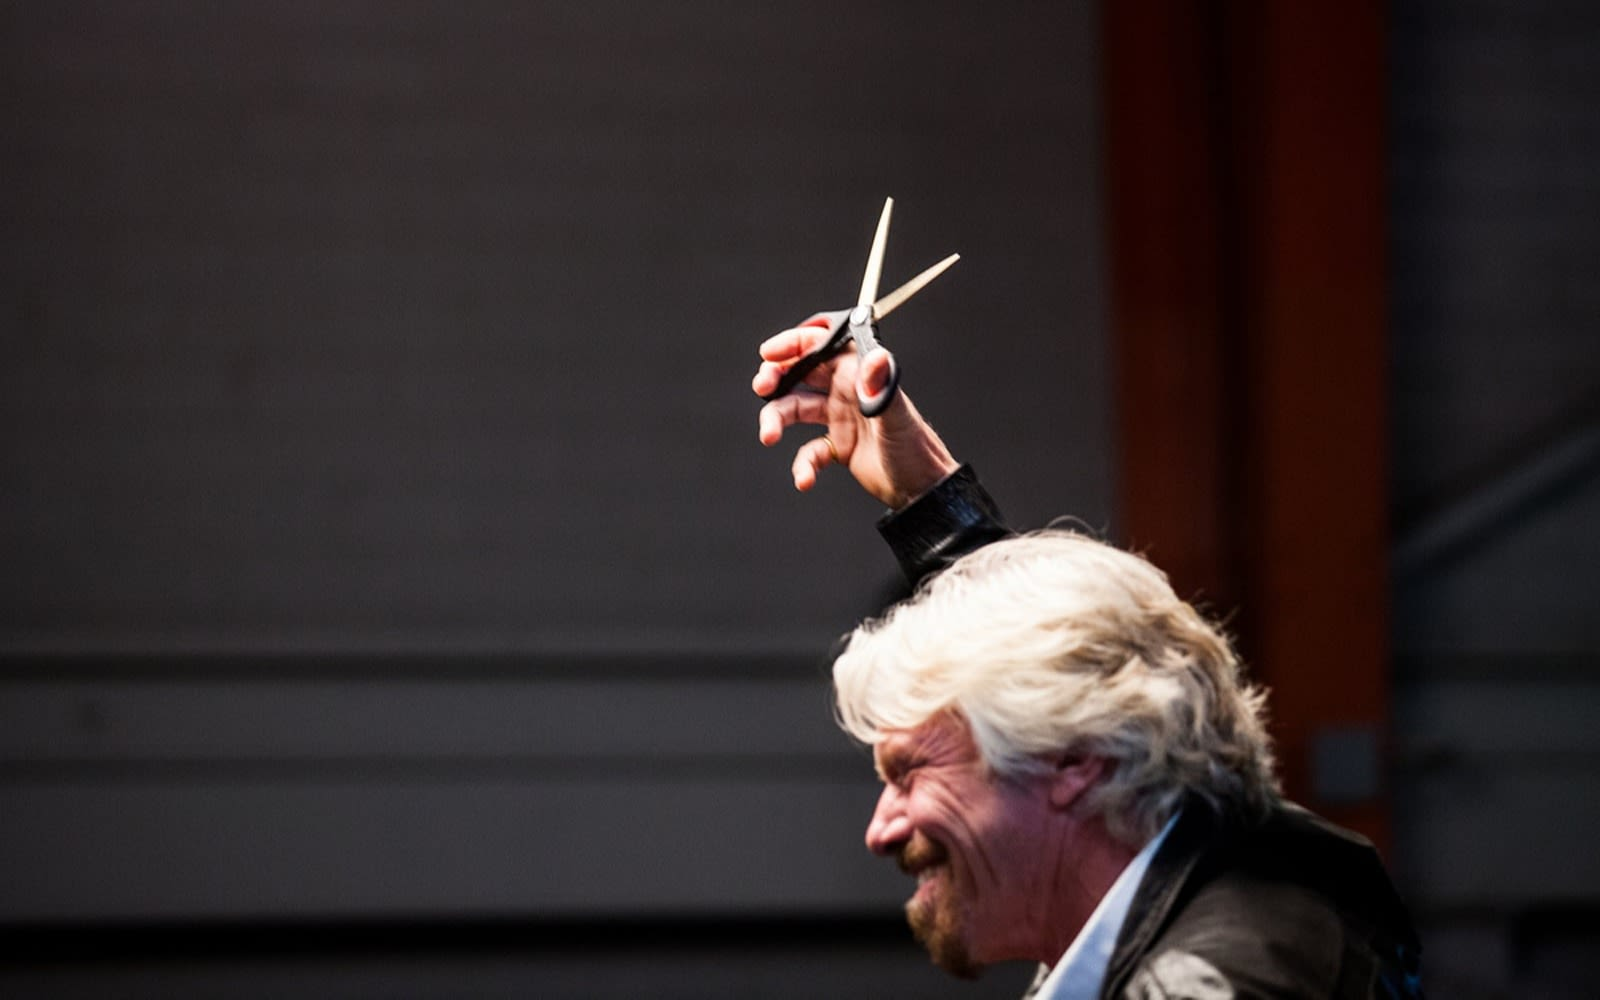 Richard Branson smiling and holding scissors in the air